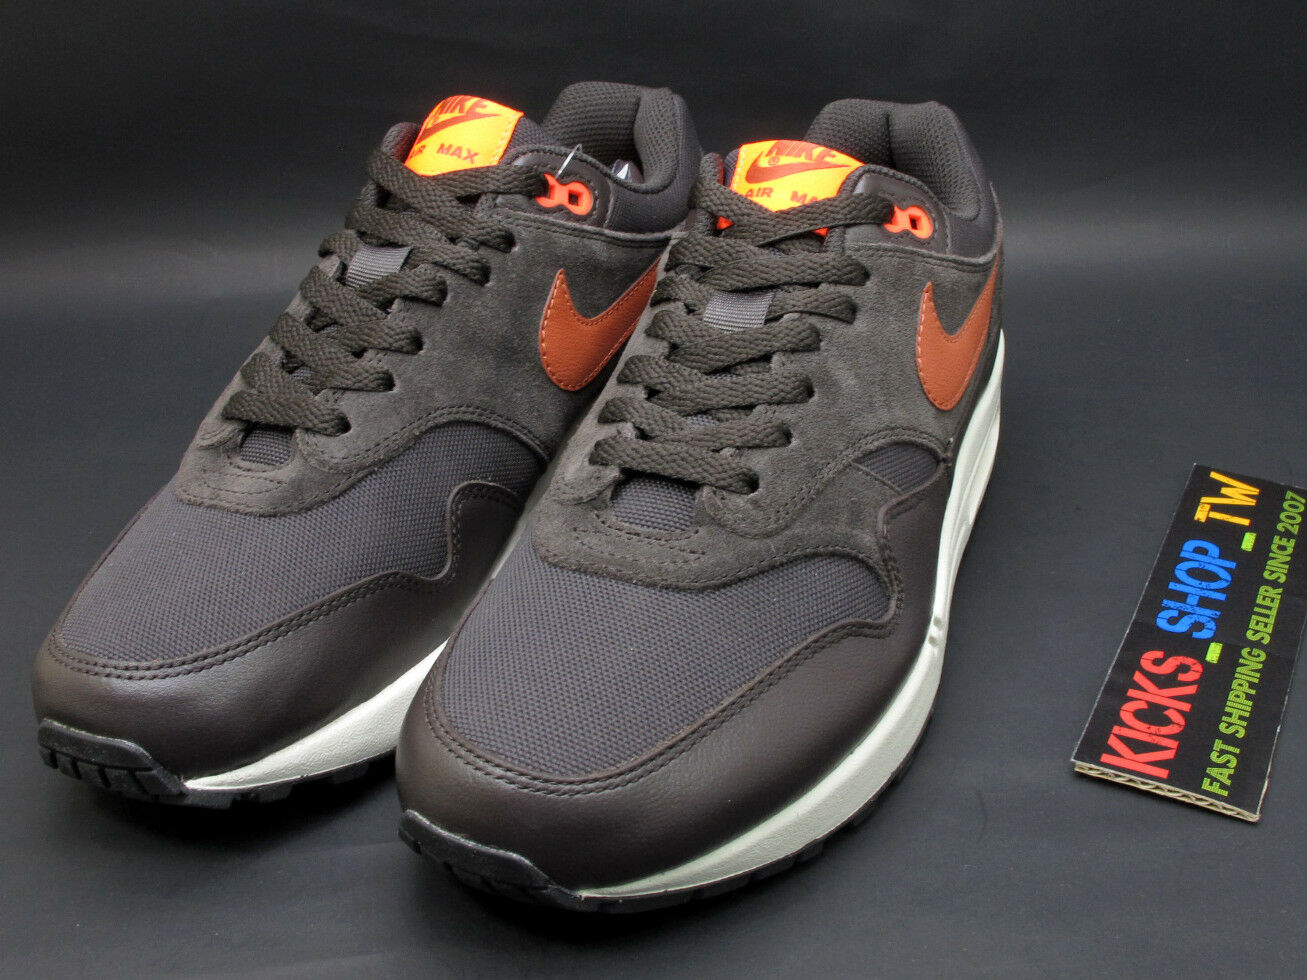 2018 NIKE AIR MAX 1 PREMIUM BROWN ORANGE SUEDE 875844-202 RUNNING ATMOS 30TH The latest discount shoes for men and women